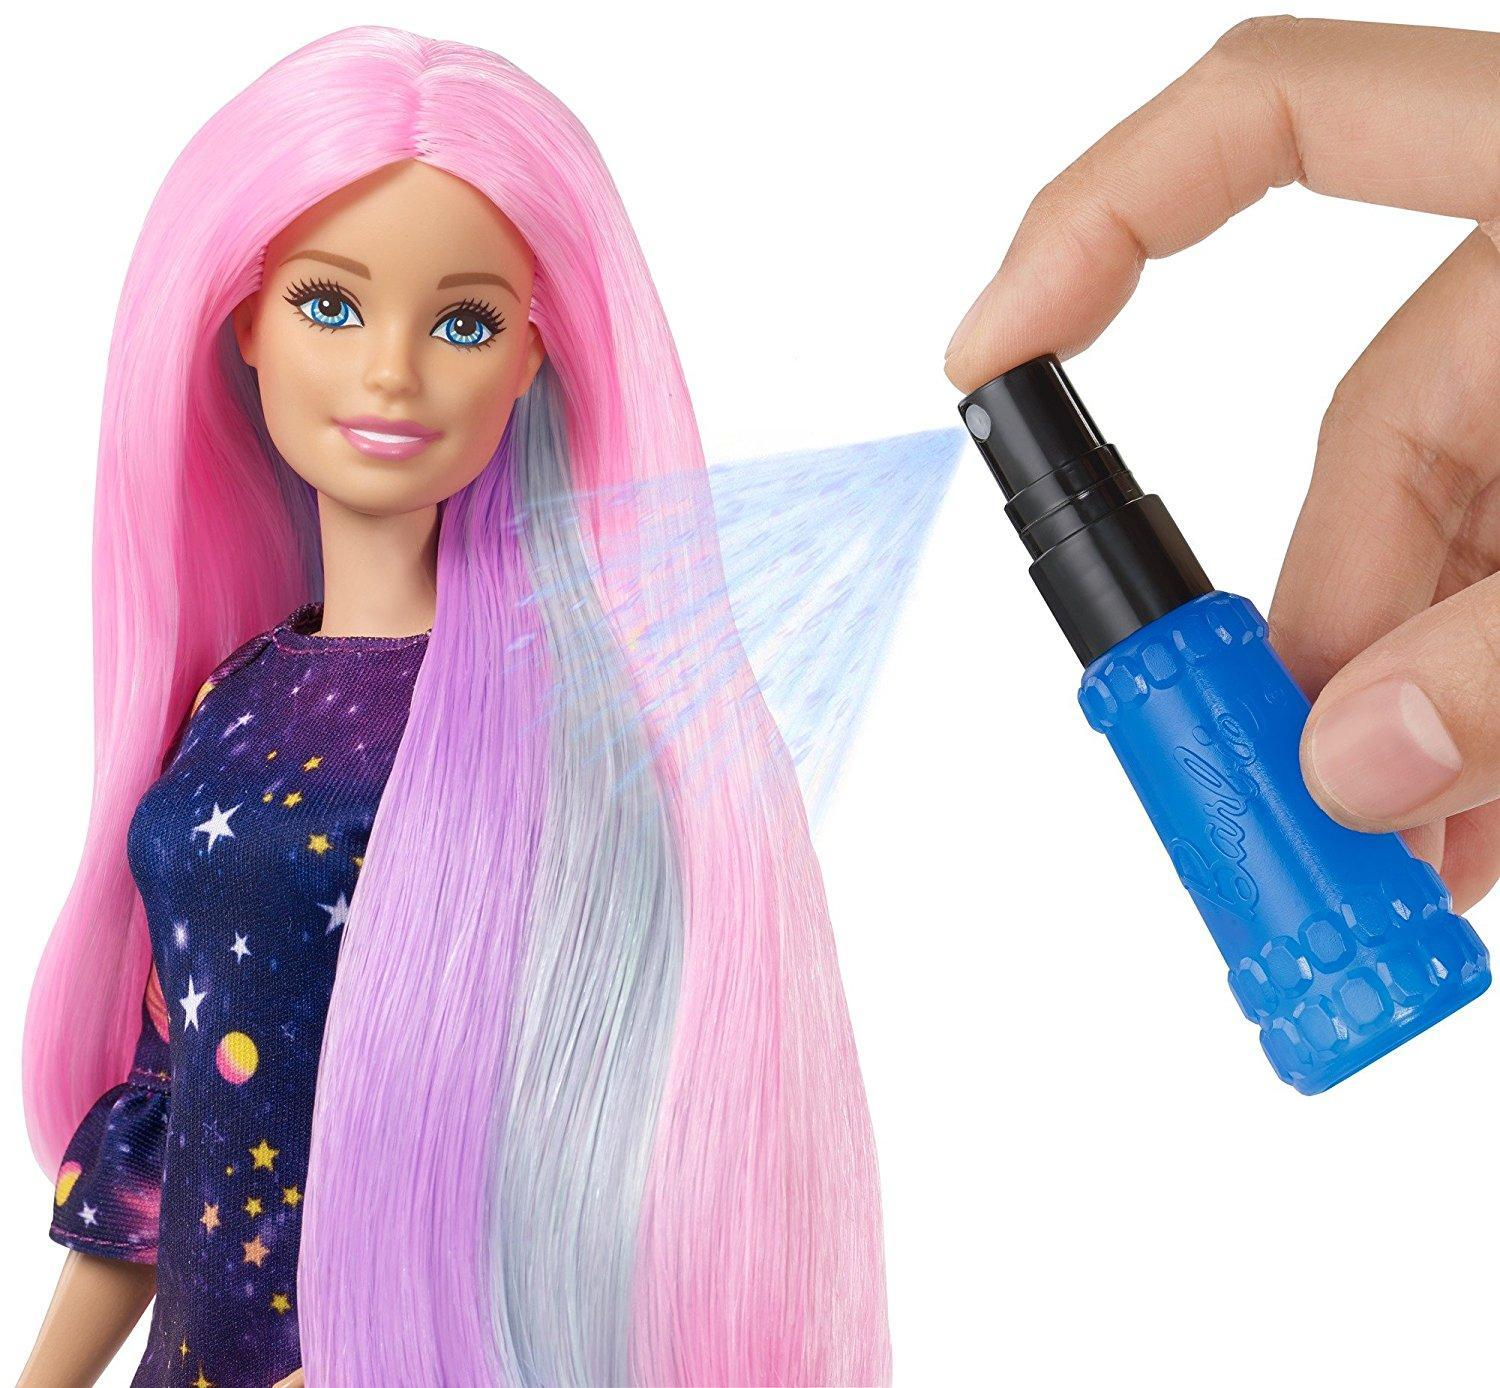 526d0668111e9d Barbie Hair Feature Doll - Color Surprise, Multi Color